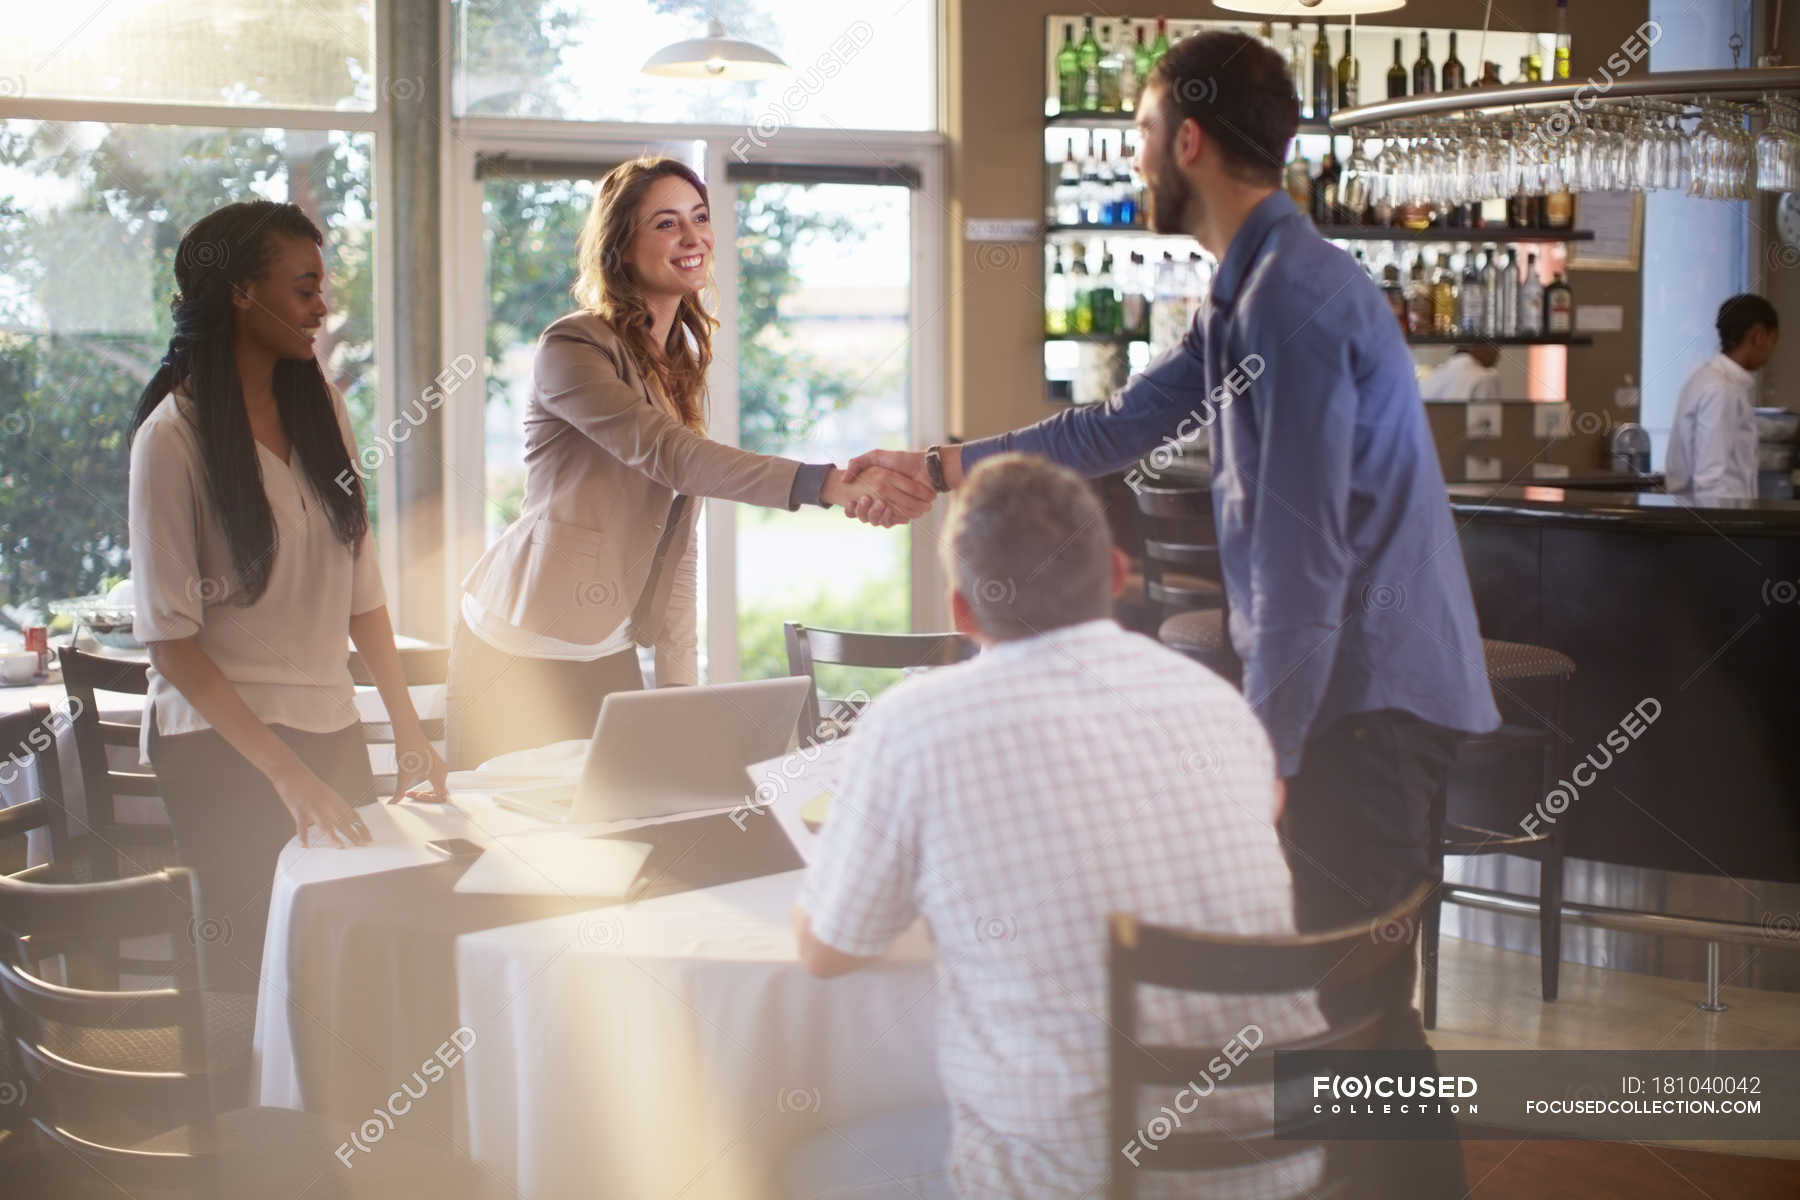 People Greeting Each Other At A Business Meeting In A Restaurant